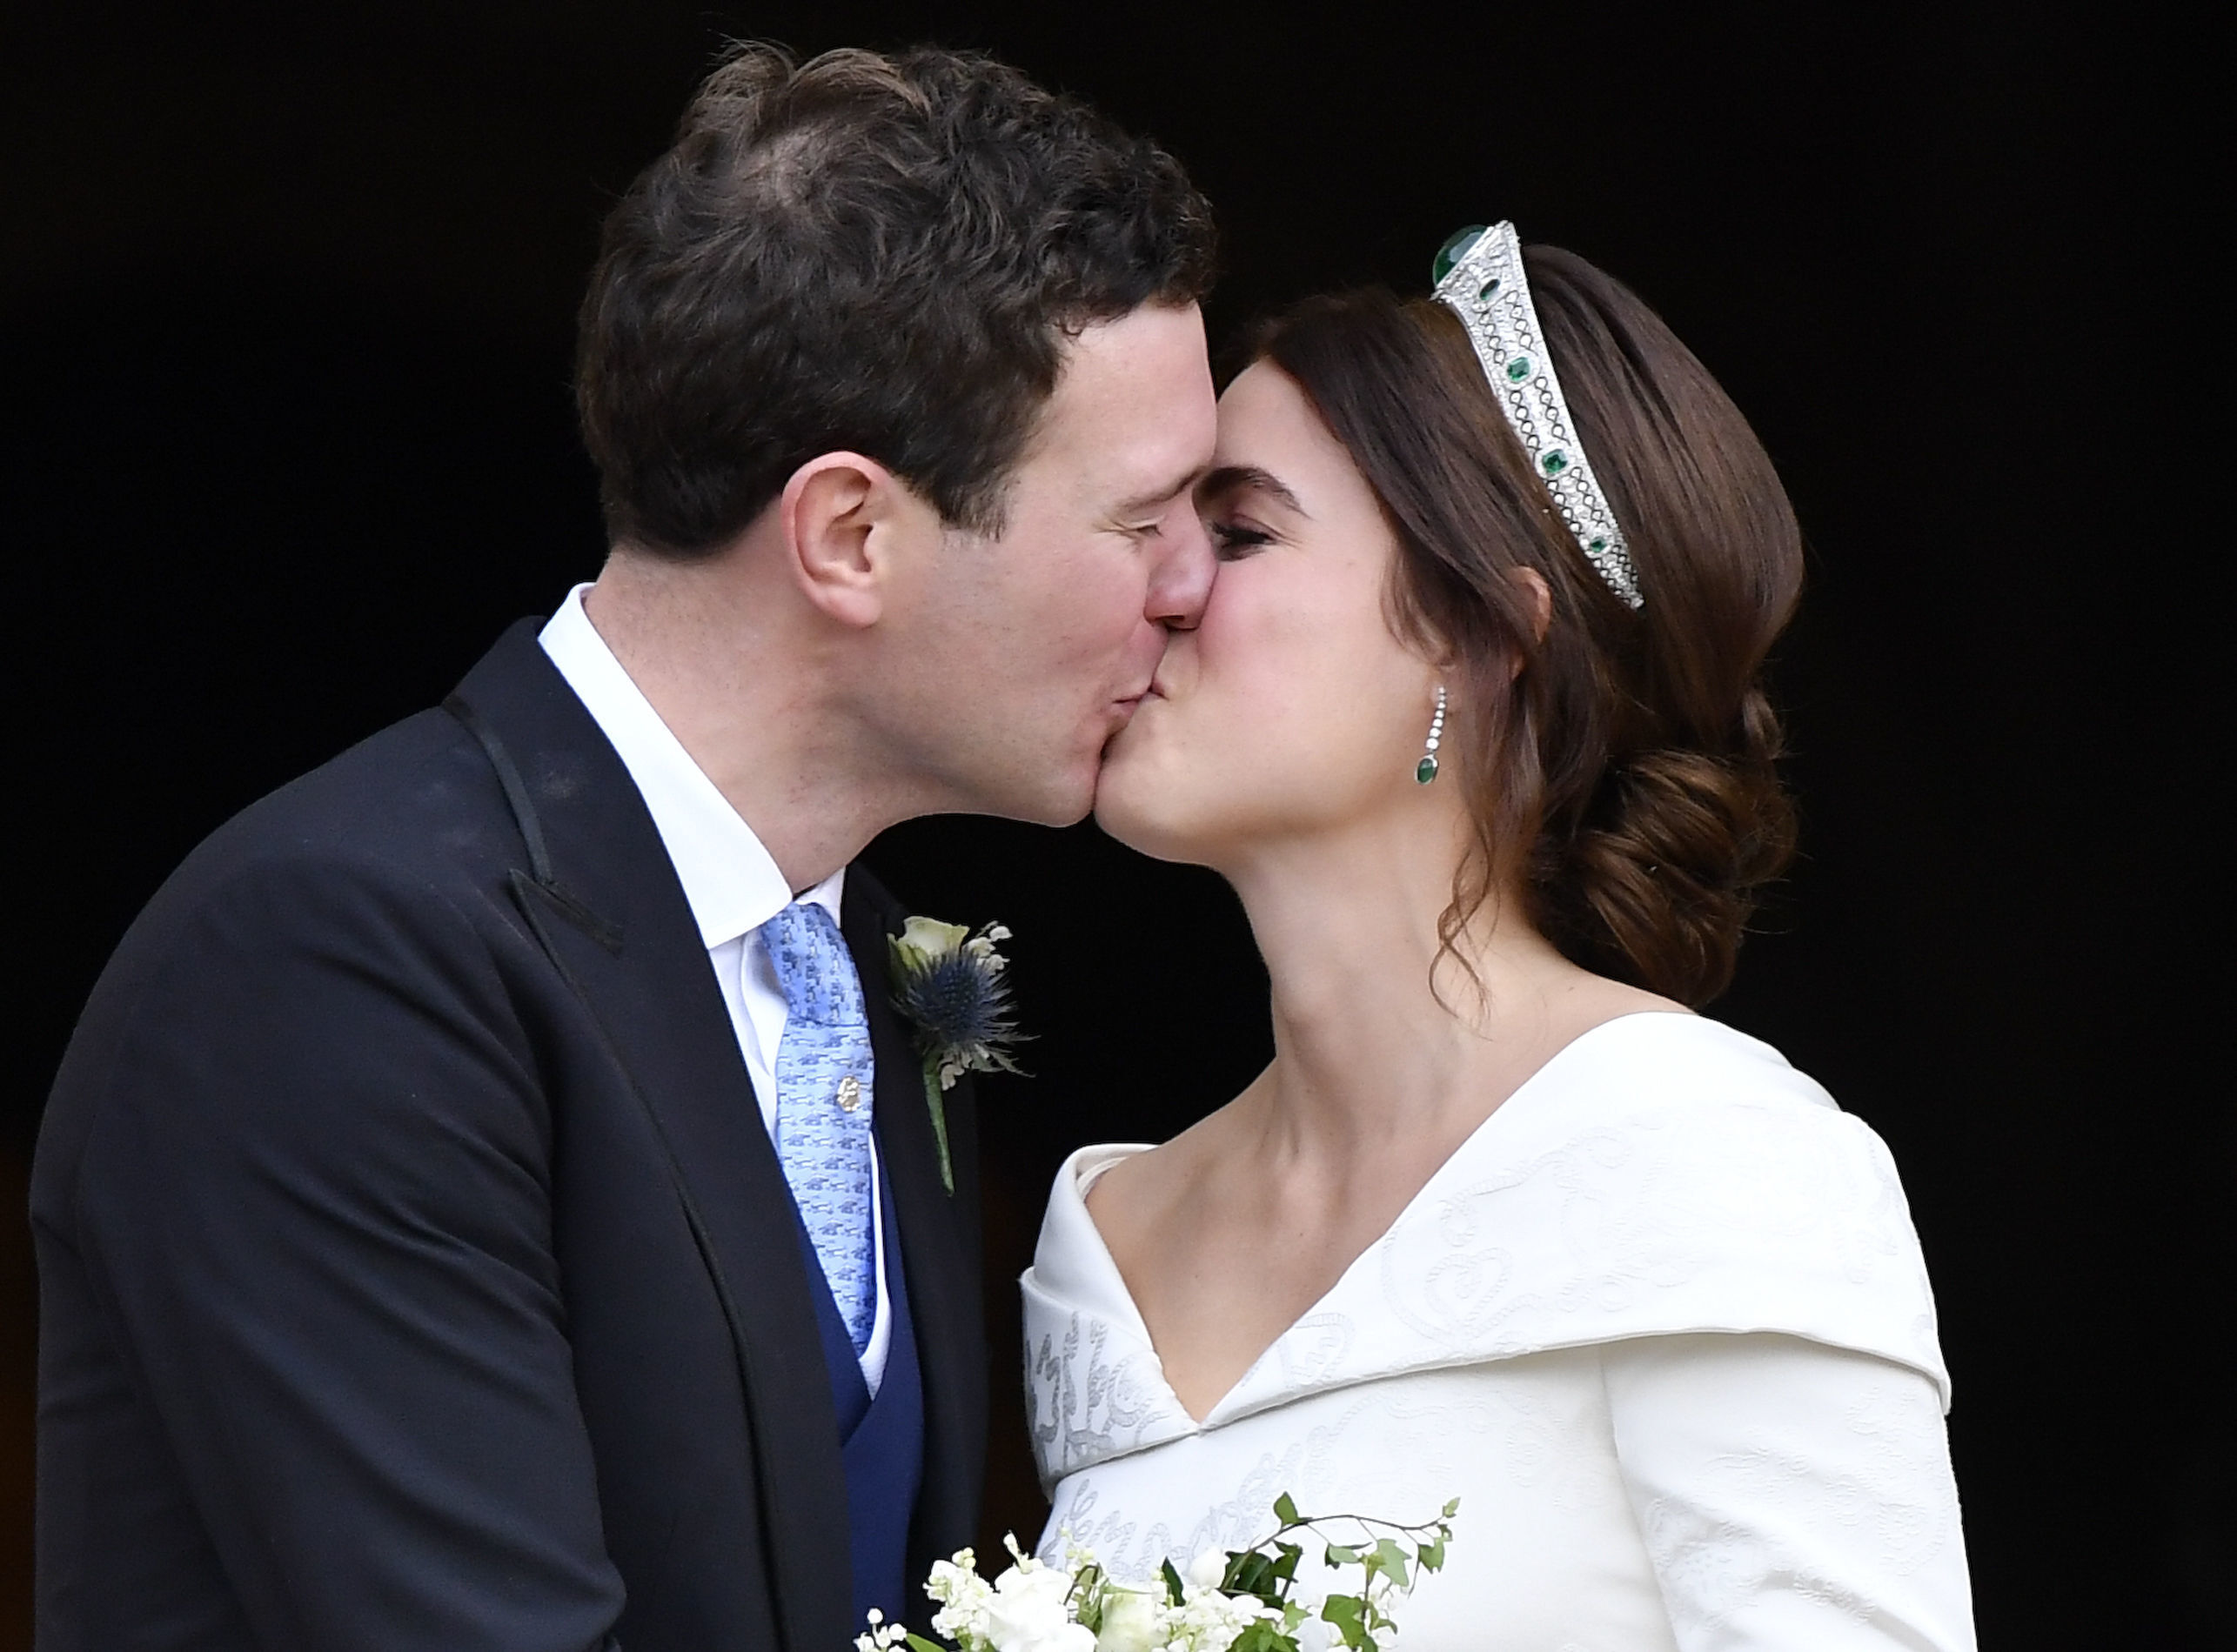 Eugenie and Jack kiss on balcony